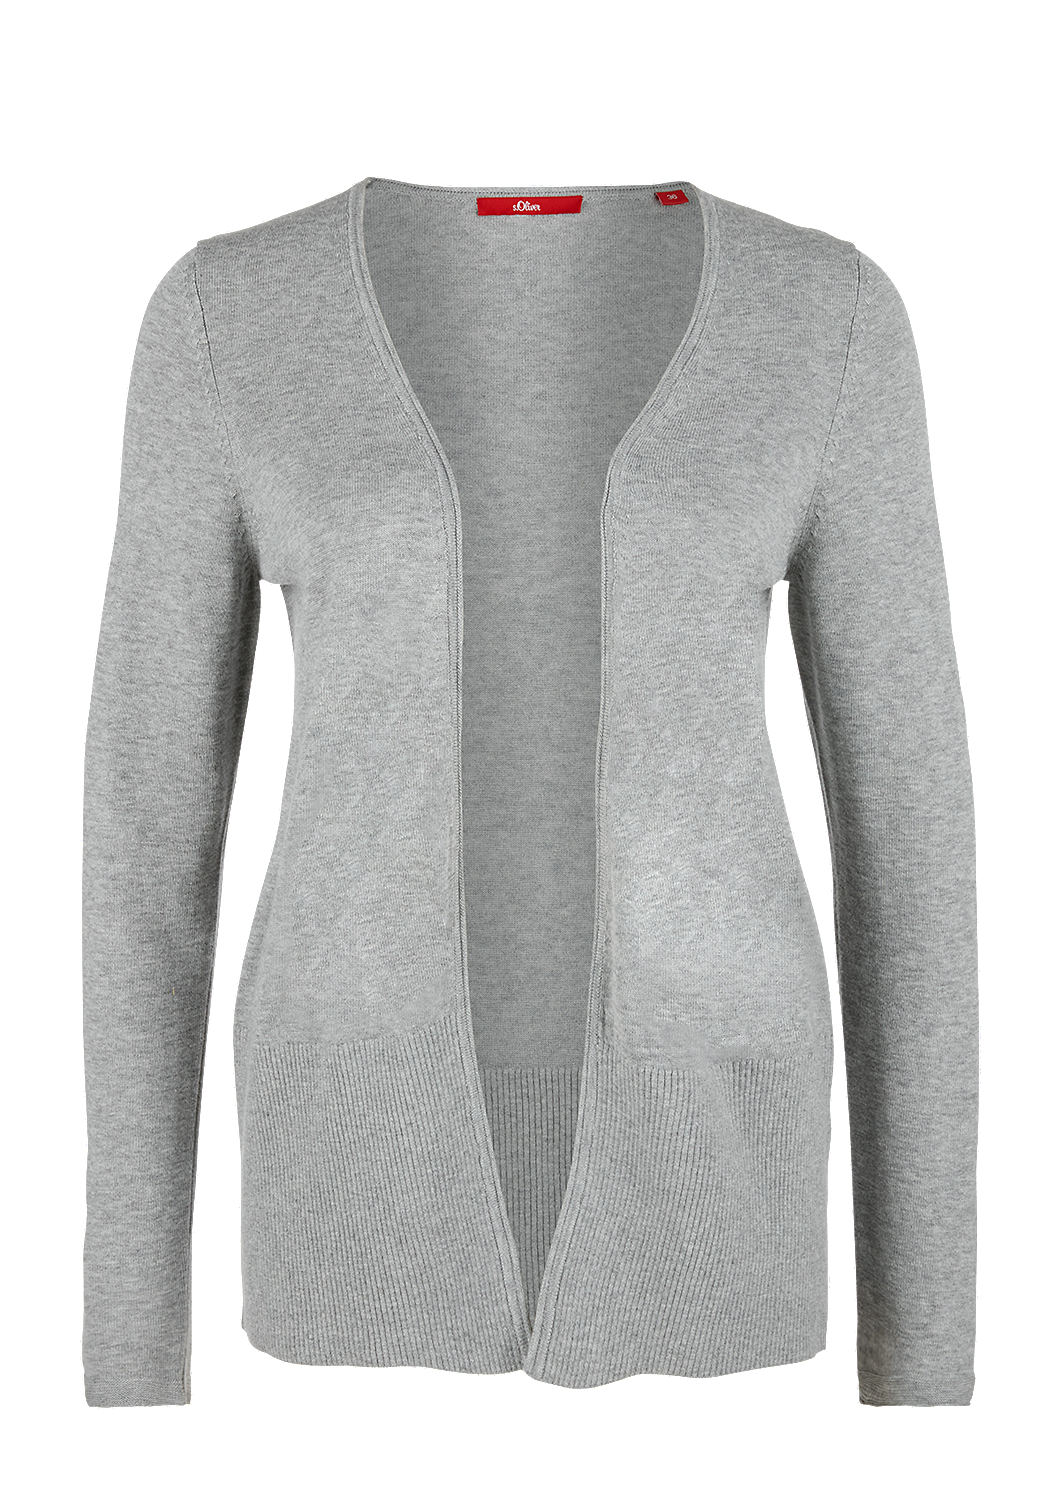 new high quality classic fit on feet images of Offener Cardigan aus Feinstrick kaufen   s.Oliver Shop